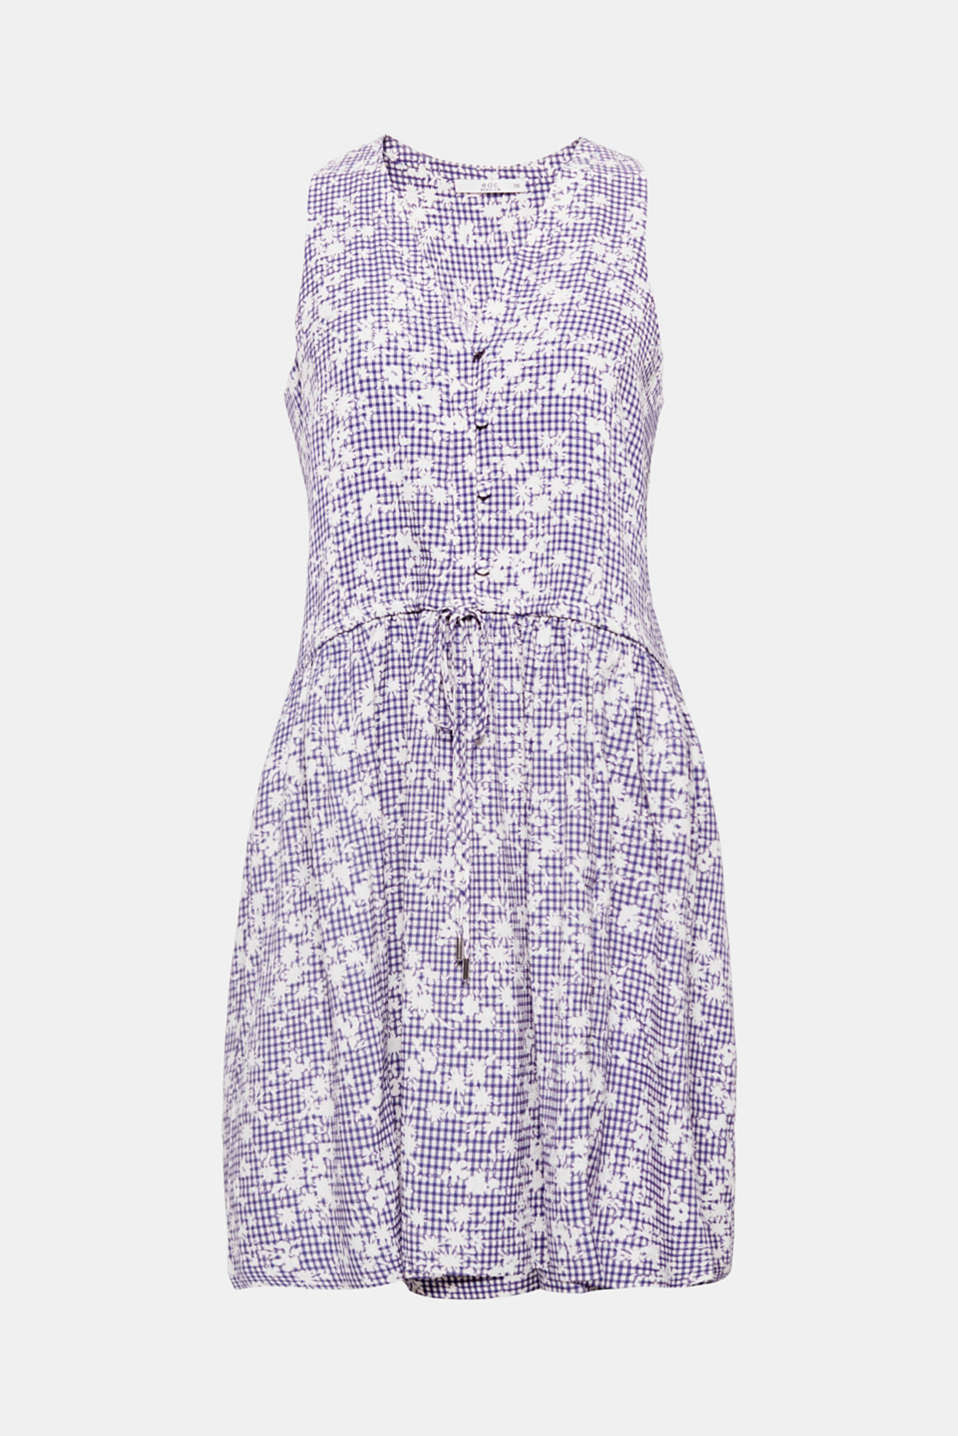 This dainty strap dress exudes floaty lightness and features a gingham check pattern, embellished with flowers. It comes with an adjustable drawstring waist.